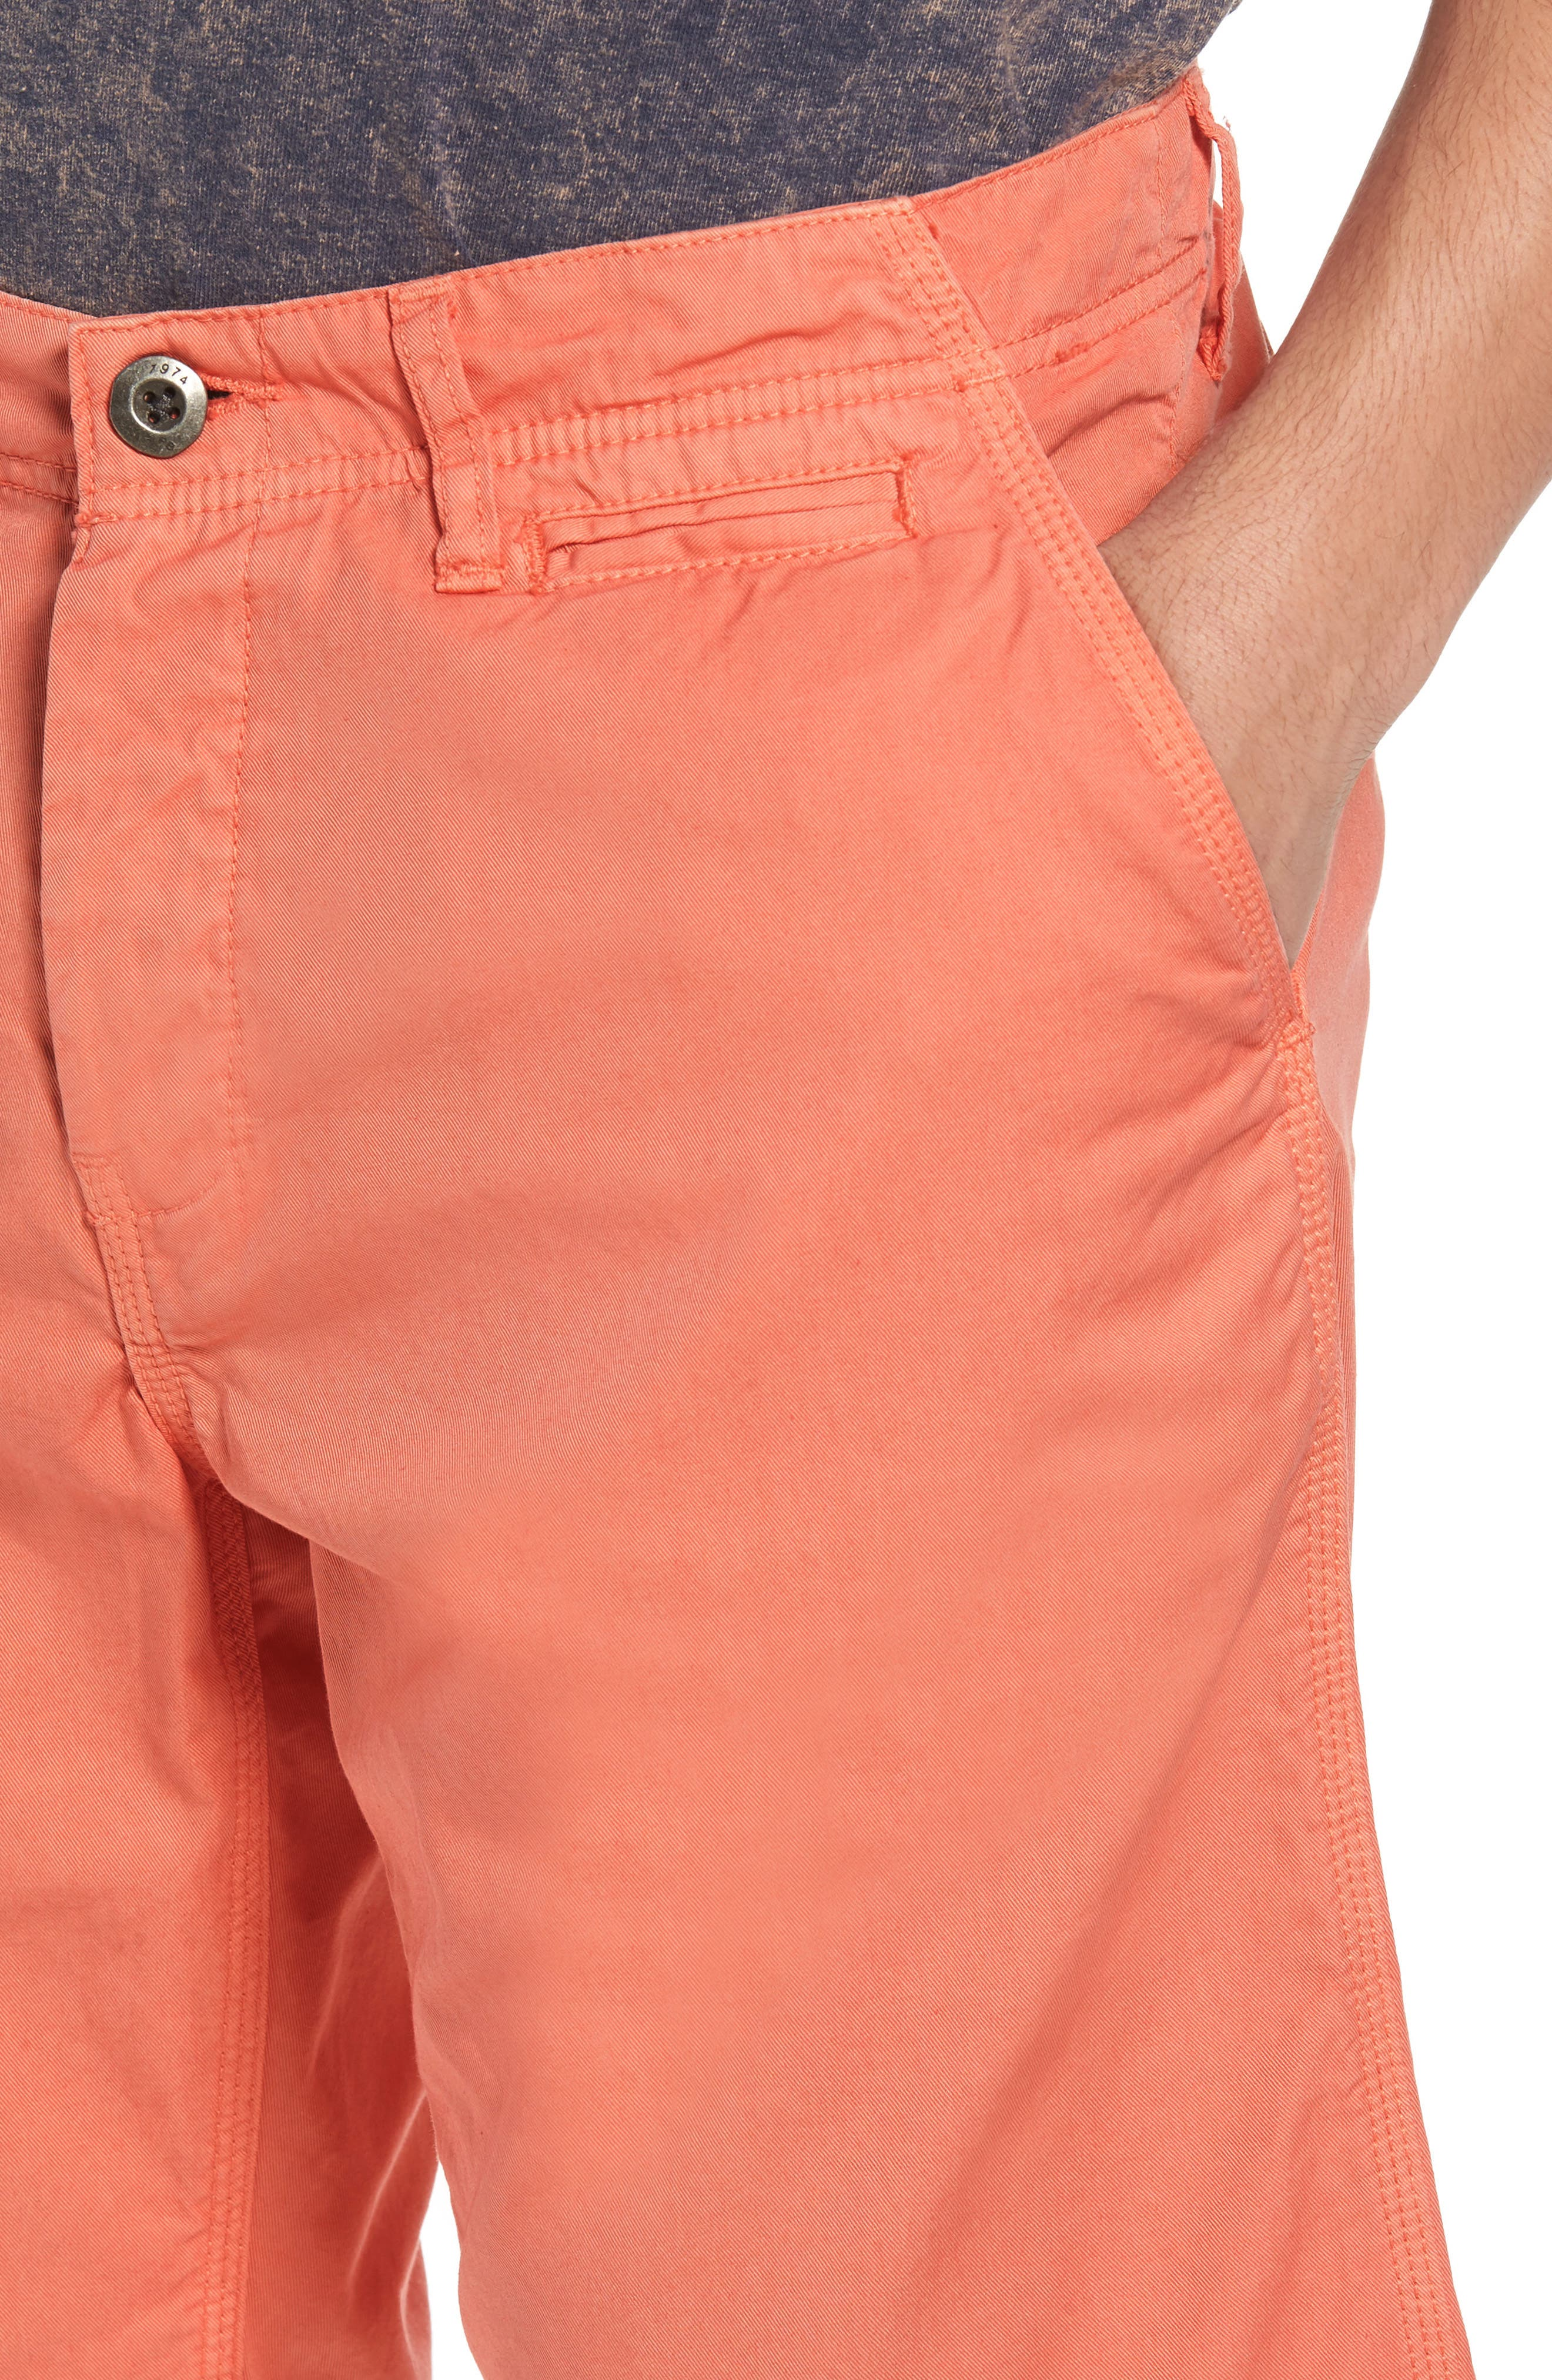 'Napa' Chino Shorts,                             Alternate thumbnail 42, color,